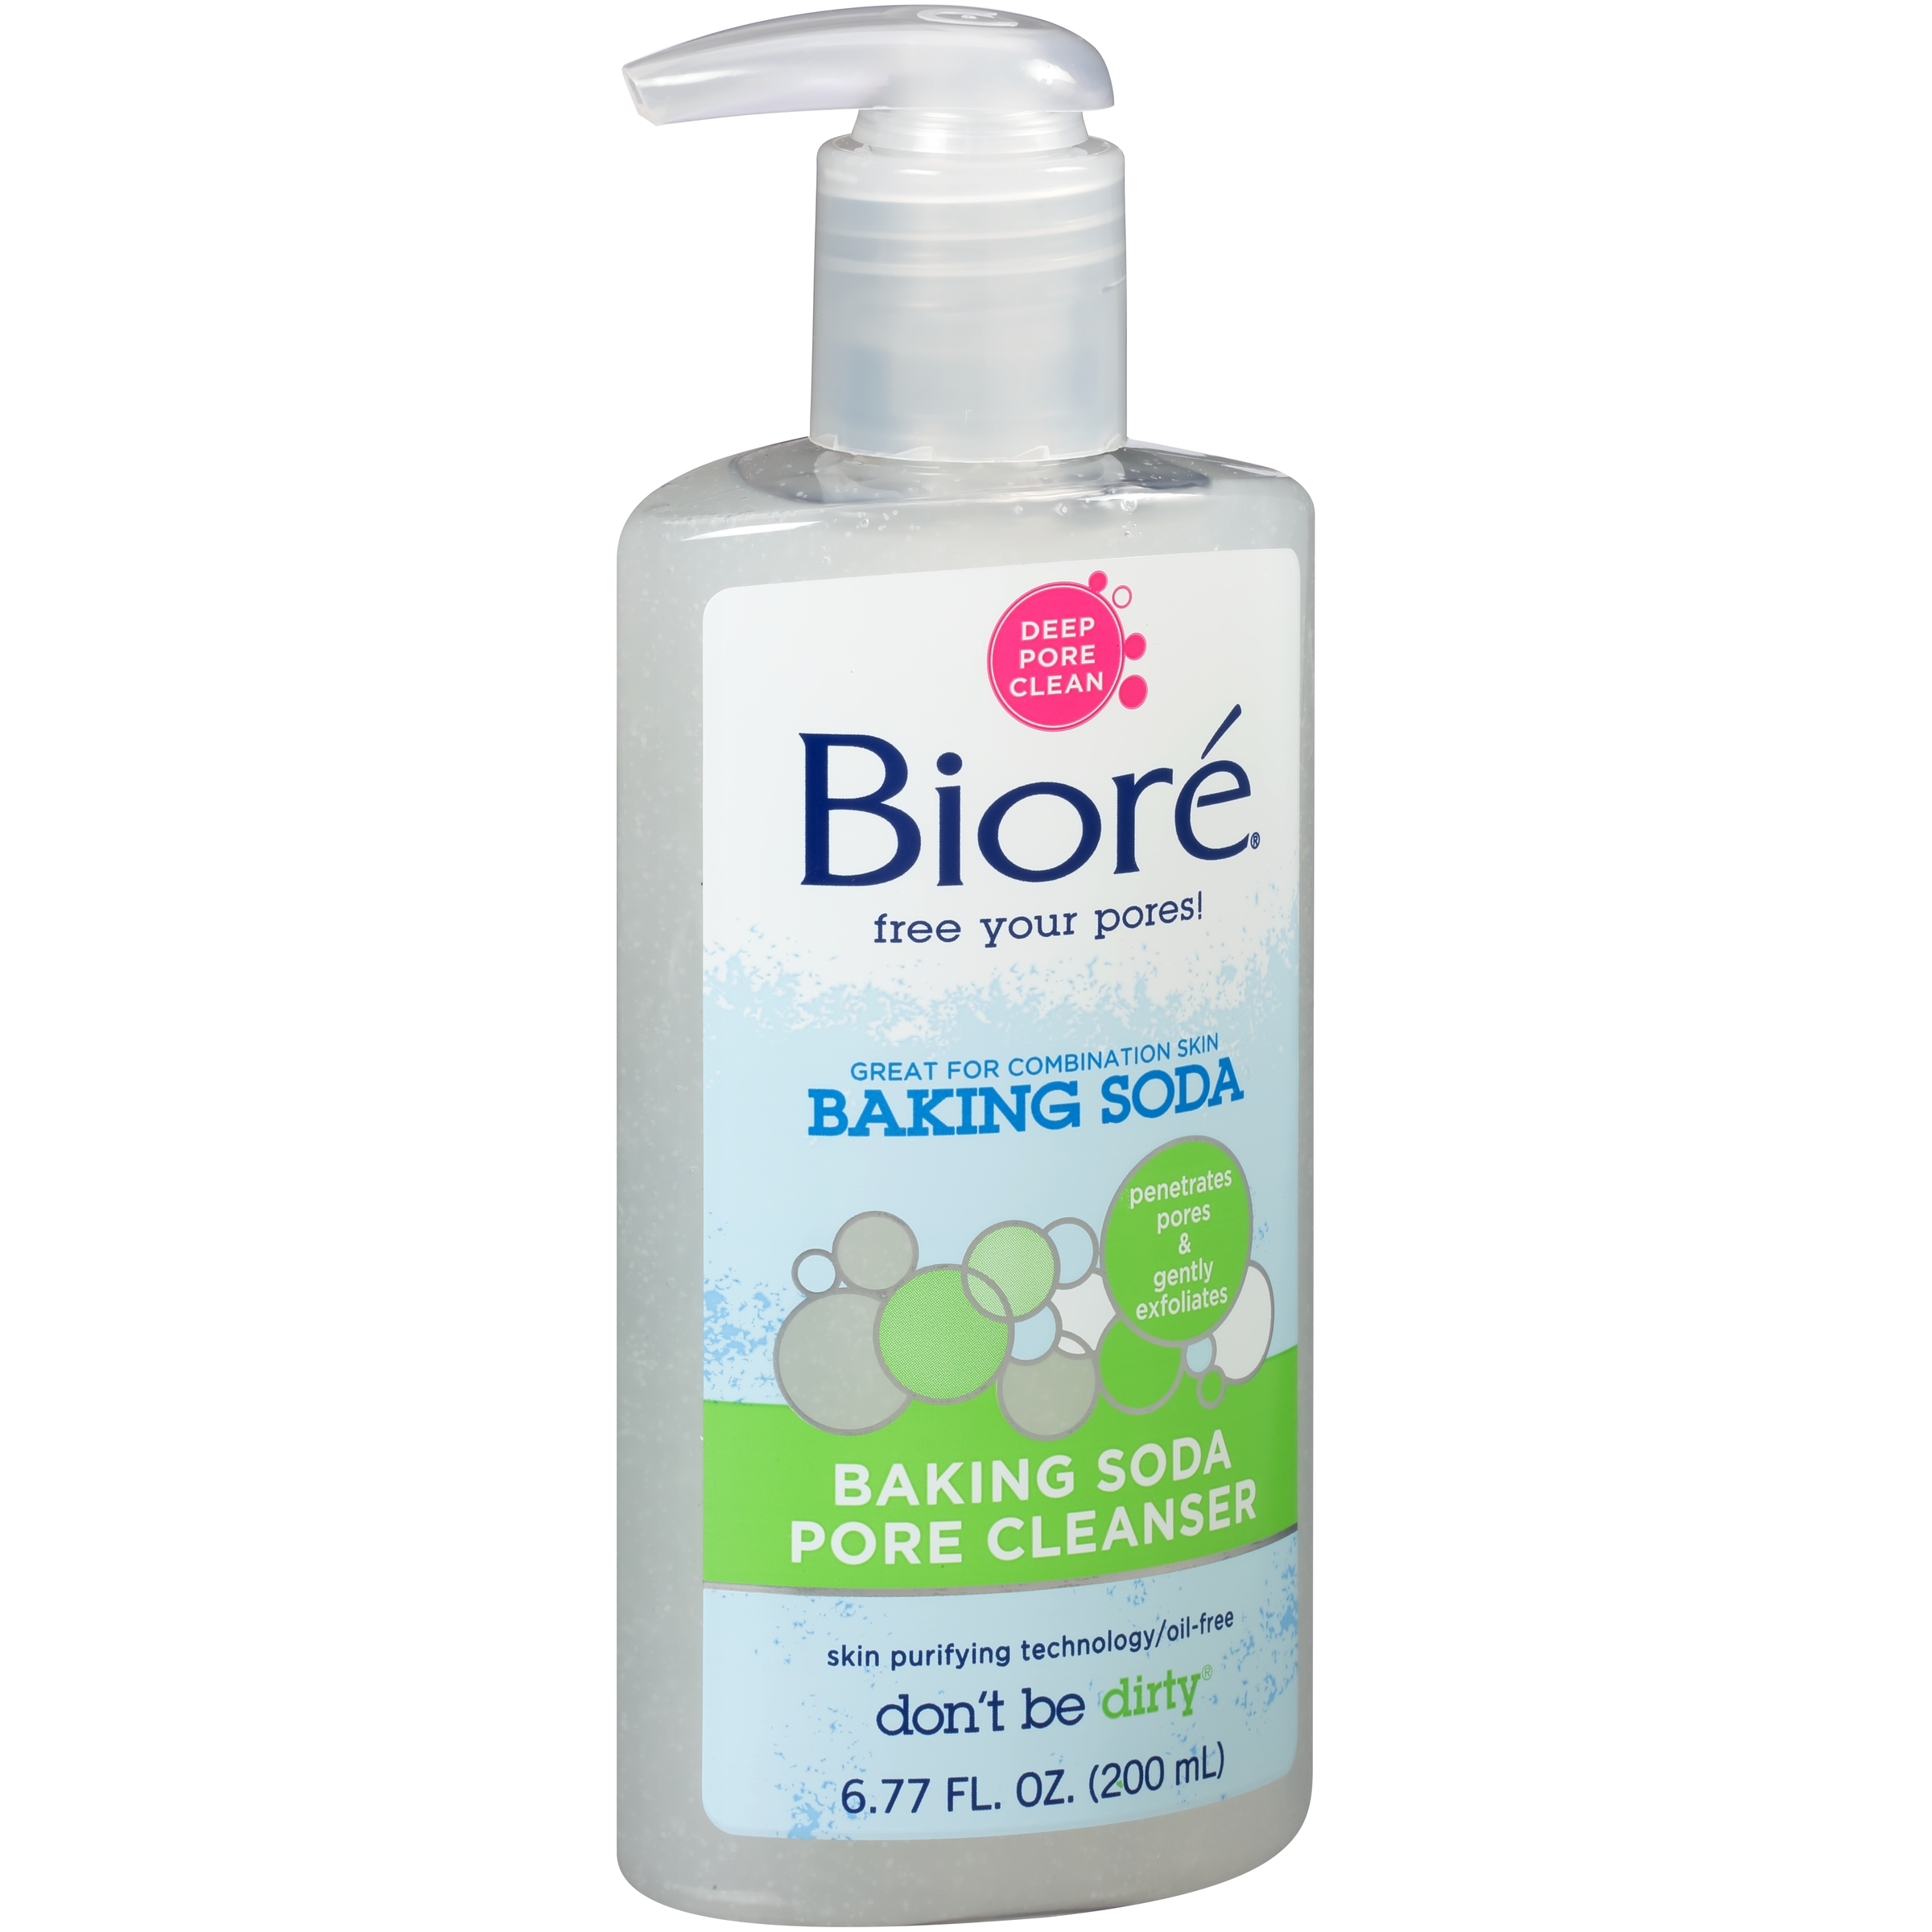 Biore® Baking Soda Pore Cleanser 6.77 fl. oz. Pump - Walmart.com